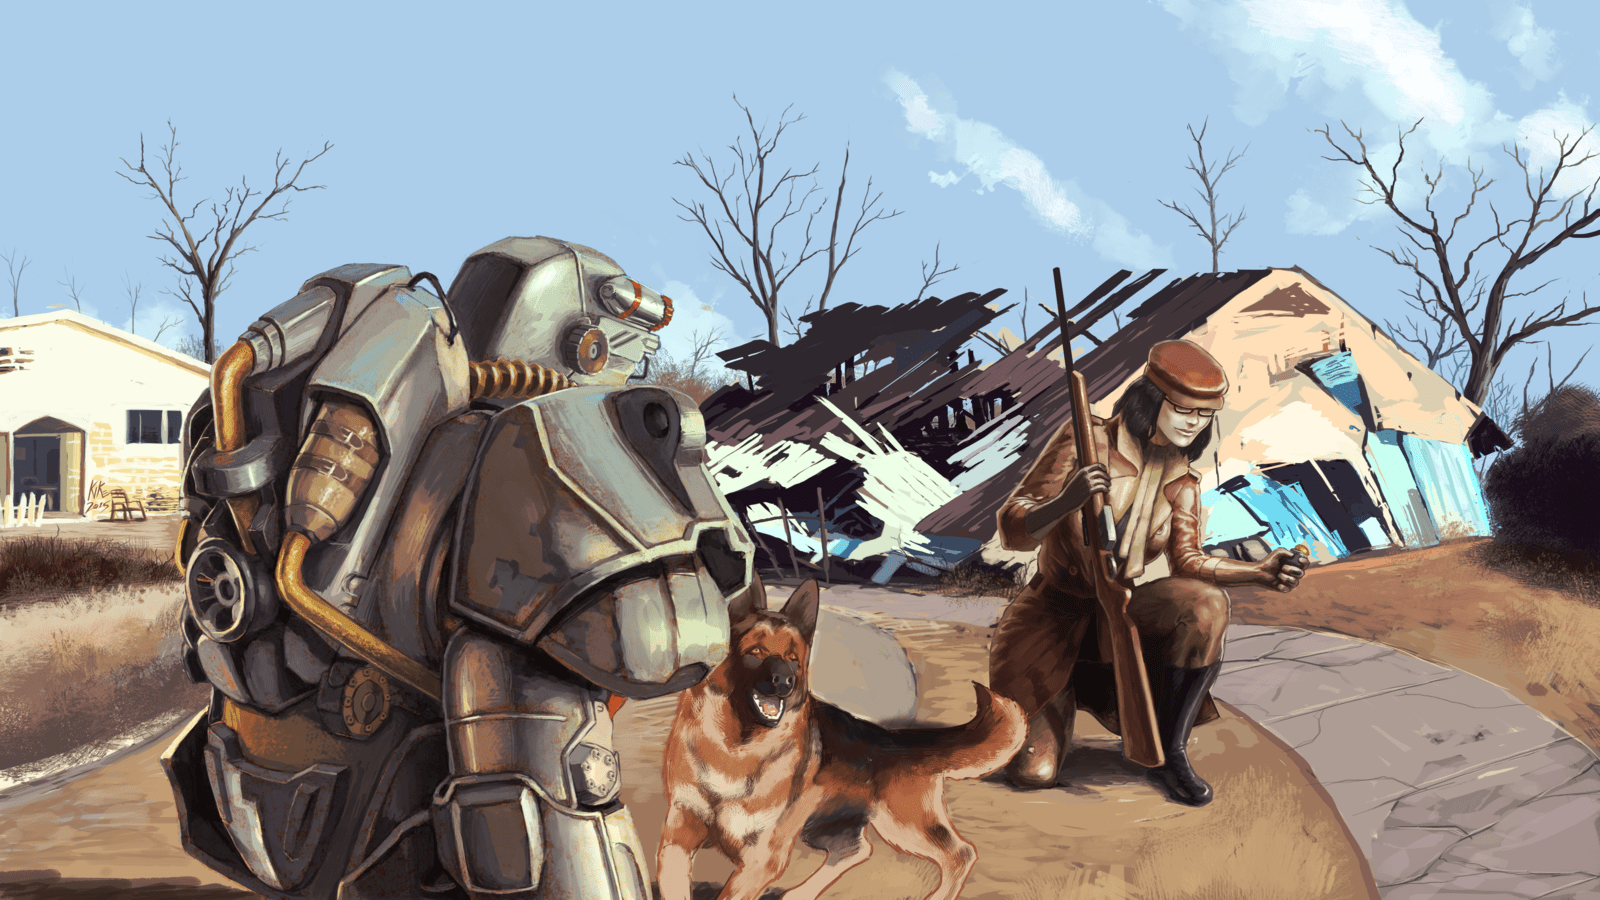 Fallout 4 Wallpaper And Background Image 1600x900 ID783133 Wallpaper Abyss